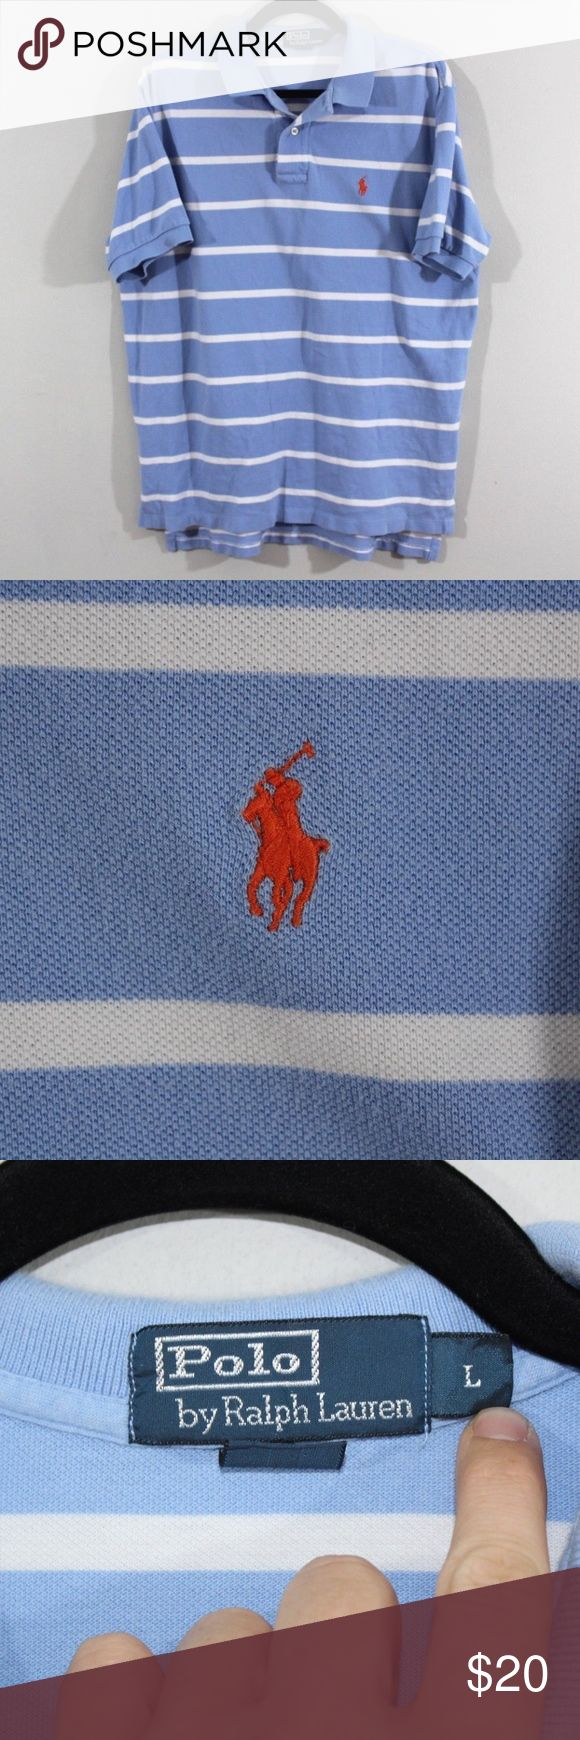 Polo by Ralph Lauren Short Sleeve Golf Shirt Blue Polo by Ralph Lauren  Excellent shirt  Comes from a smoke-free household  Blue striped with a Red Pony logo  The size is Large and the measurements are 23 inches underarm to underarm and 28.5 inches shoulder to base  Cotton  Check out my other items for sale in my store!  MX Polo by Ralph Lauren Shirts Polos